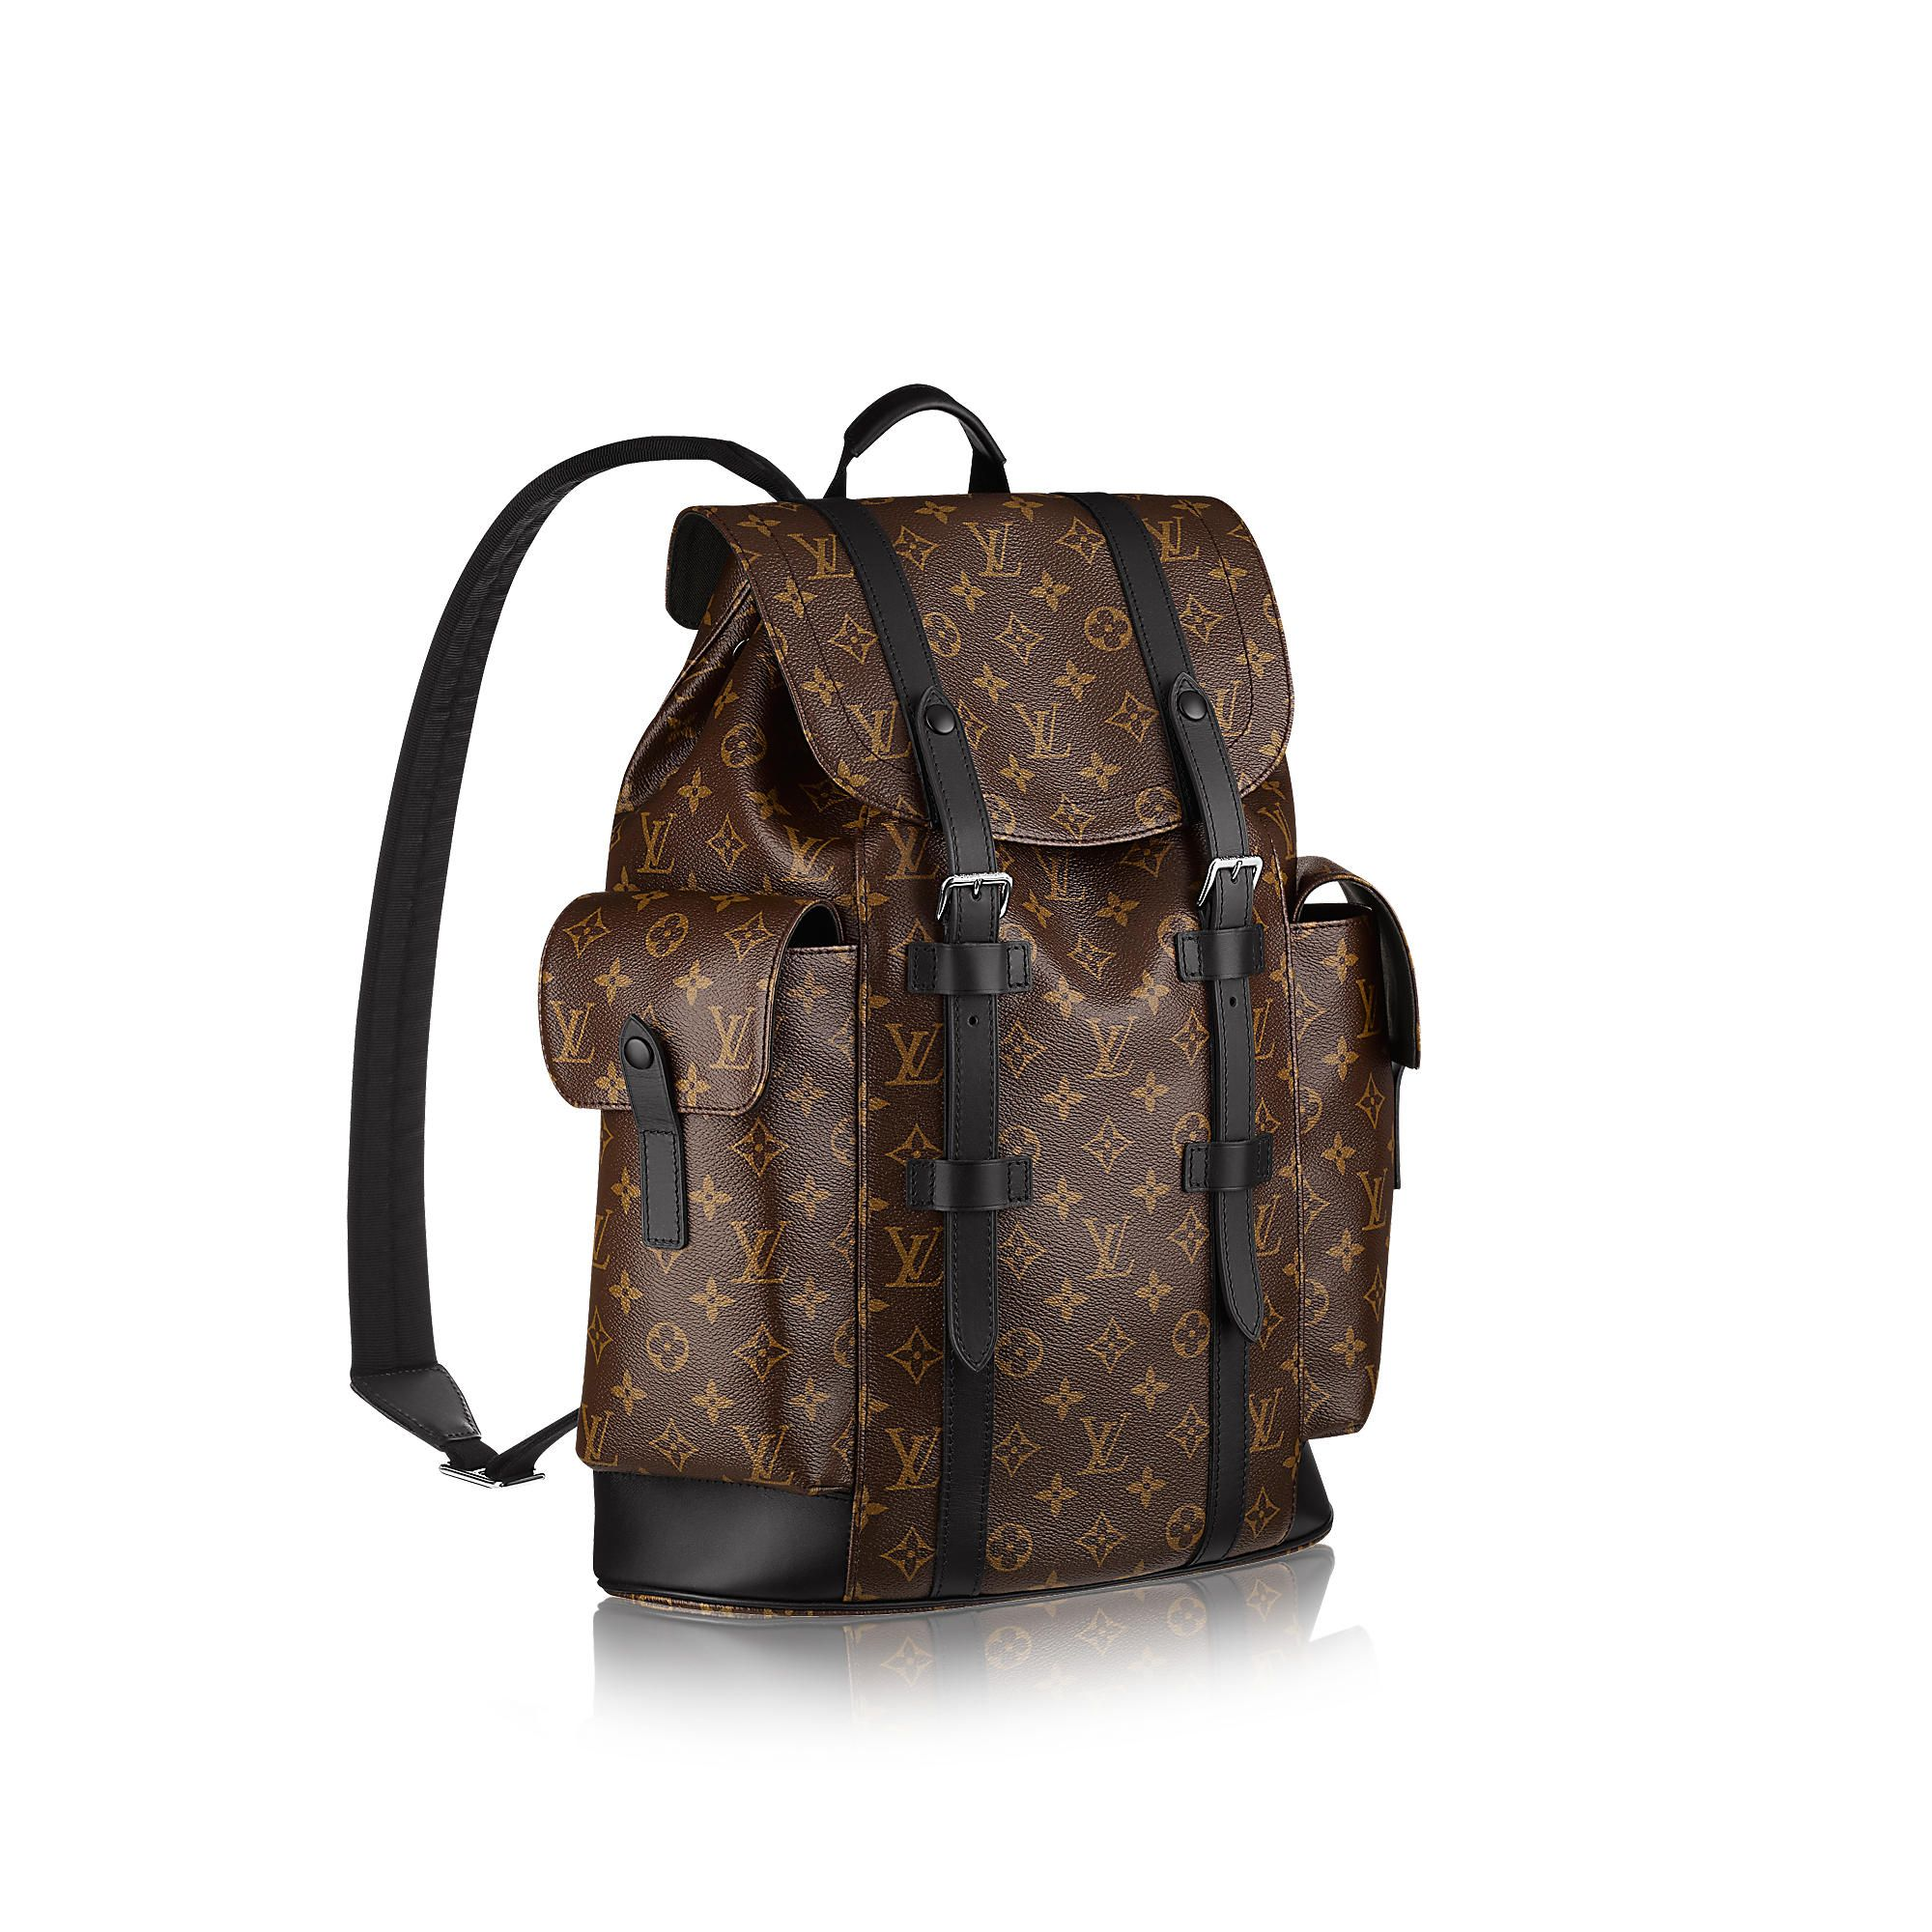 849b1493d05 Christopher PM in 2019 | Fashion | Louis vuitton backpack, Louis ...